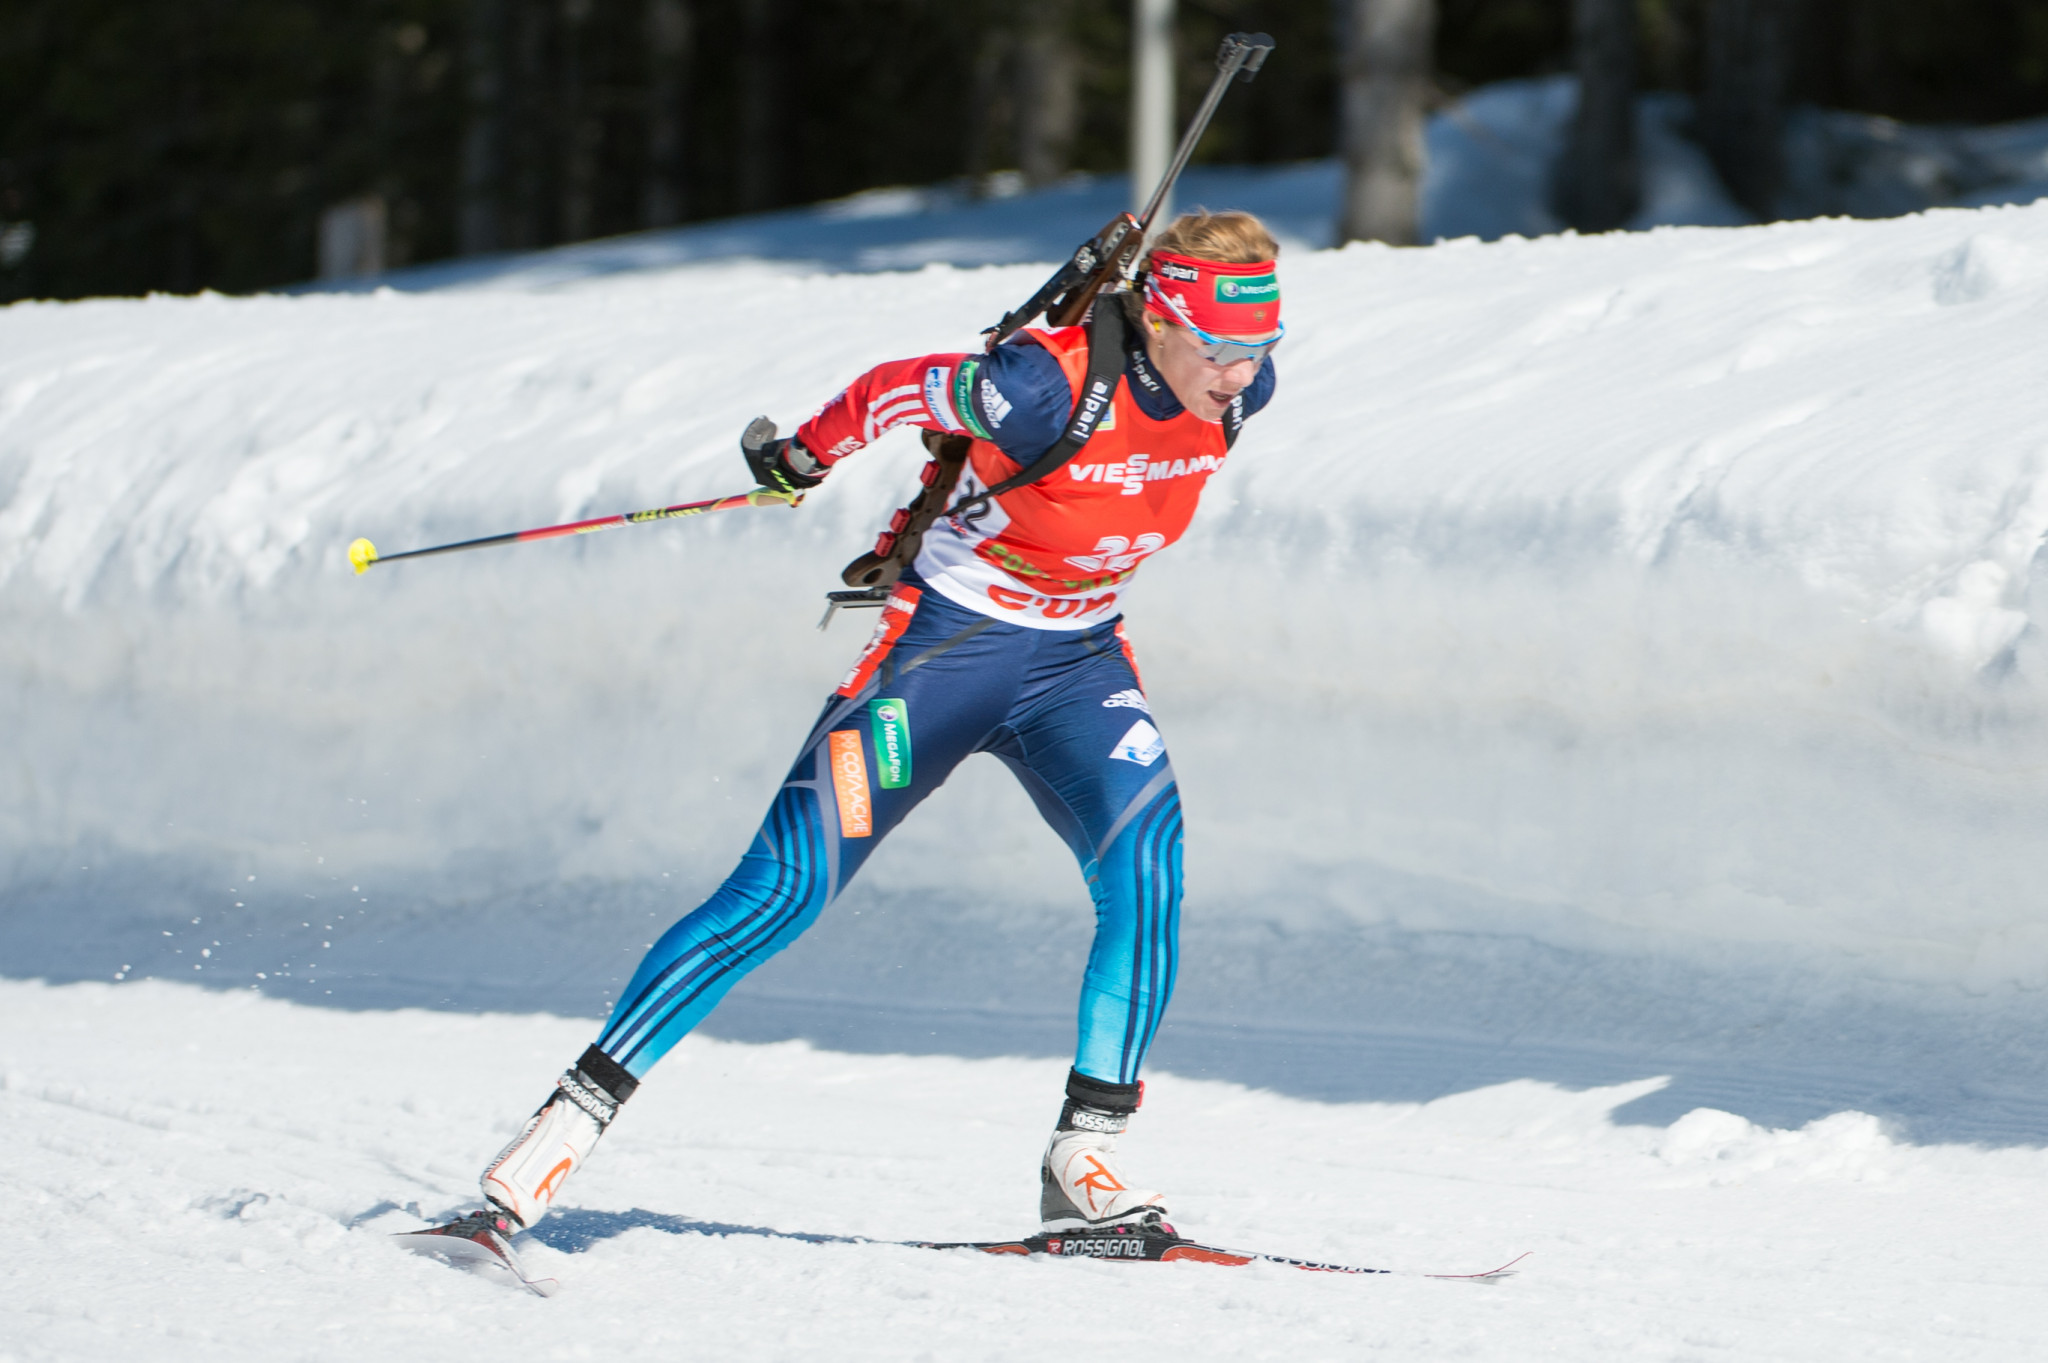 Olympic biathlon silver medallist Olga Zaitseva is among those to have filed appeals to the CAS ©Getty Images